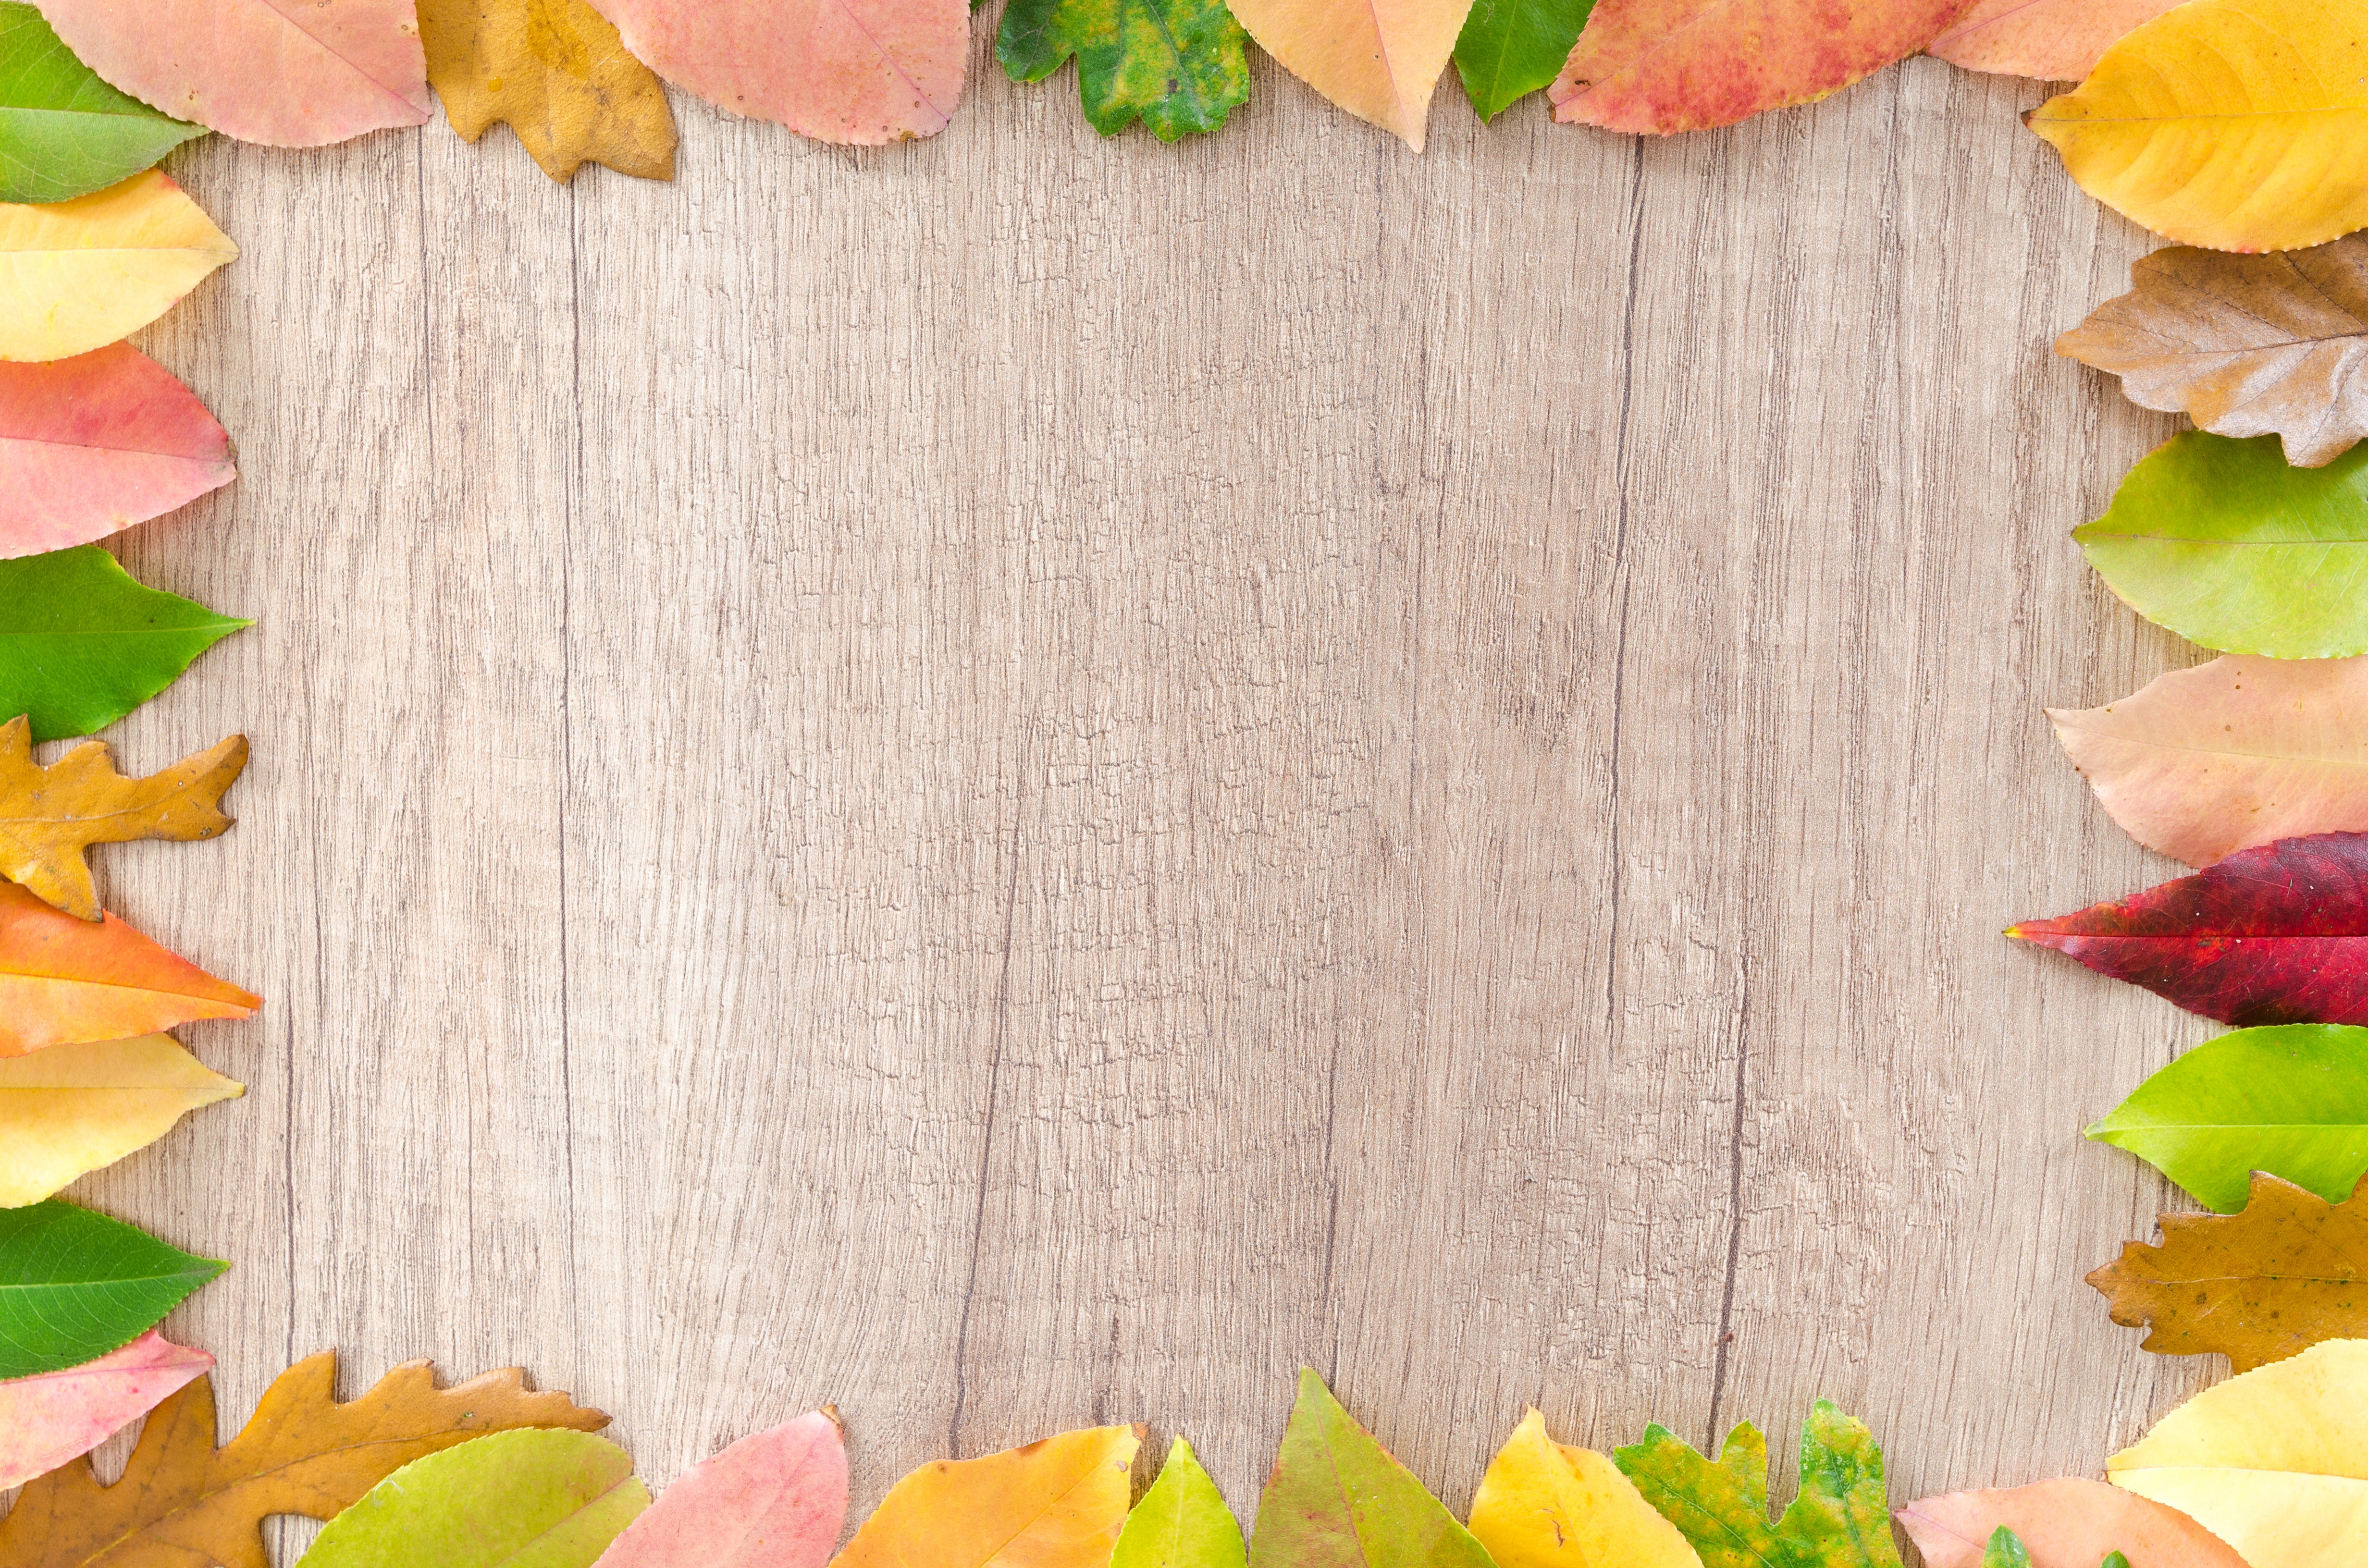 Assorted Leaves Piled on Border of Brown Wooden Board, Background, Green, Wooden, Wood, HQ Photo